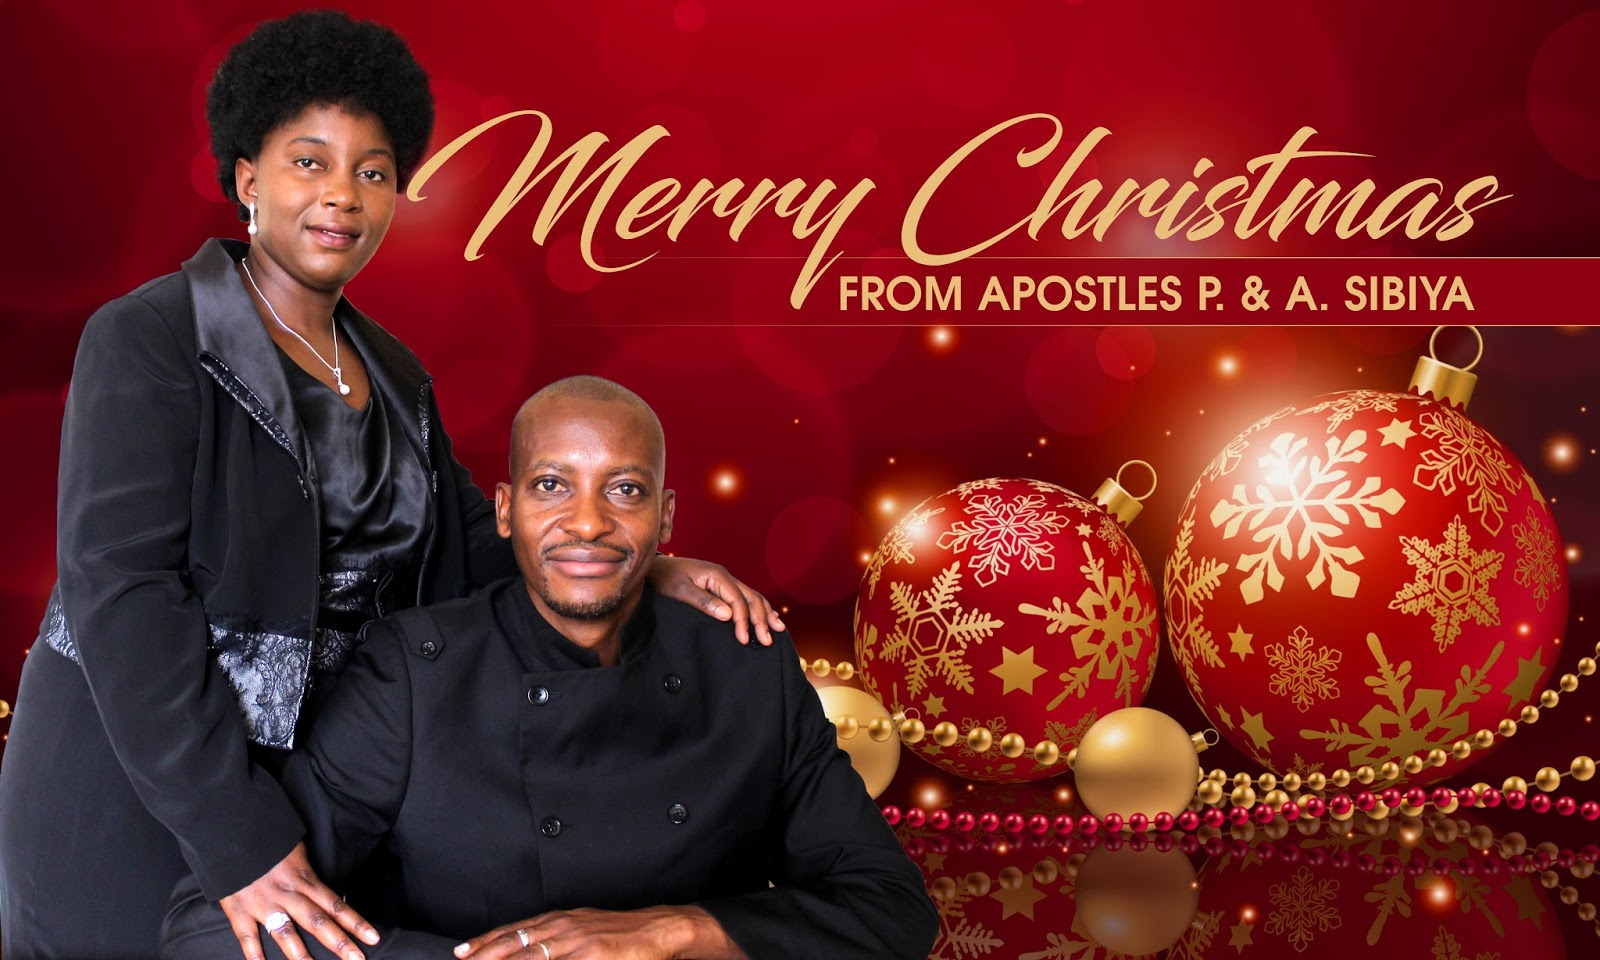 Apostle Pride & Anna Sibiya and The Glory Ministries Family Wishes You A Merry Christmas